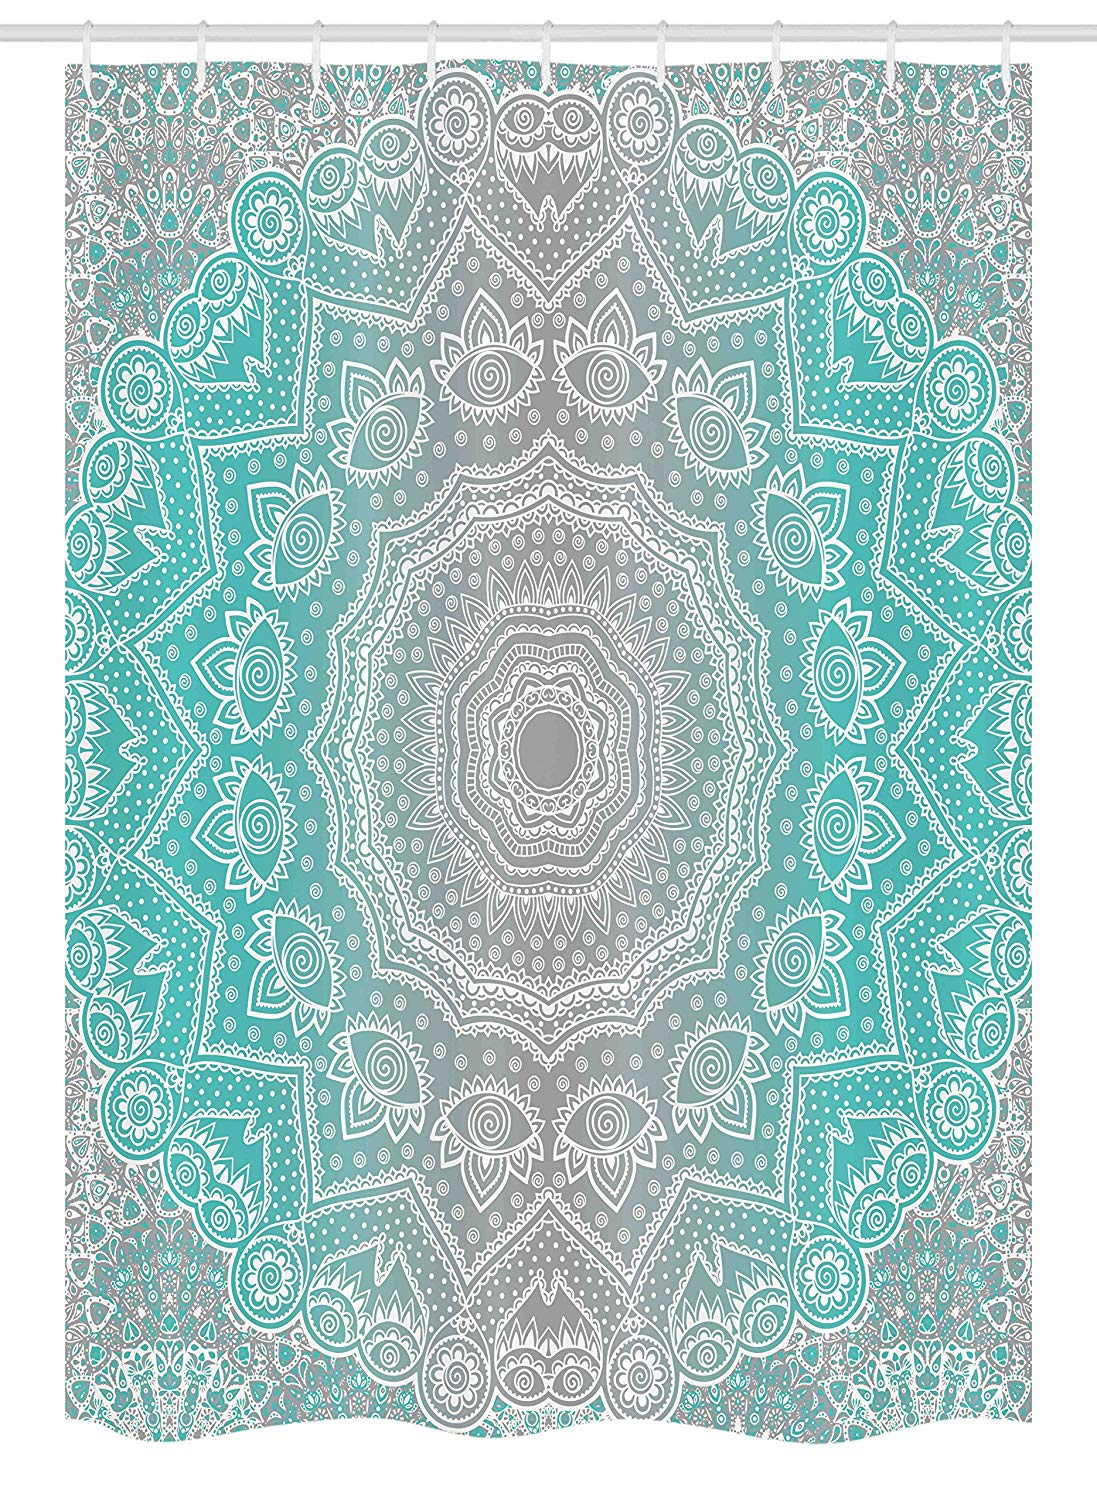 Ambesonne Grey and Turquoise Stall Shower Curtain, Primitive Spiritual Essence and Universe Harmony Mandala Ombre Art, Fabric Bathroom Decor Set with Hooks, 54 W x 78 L Inches, Turquoise Grey